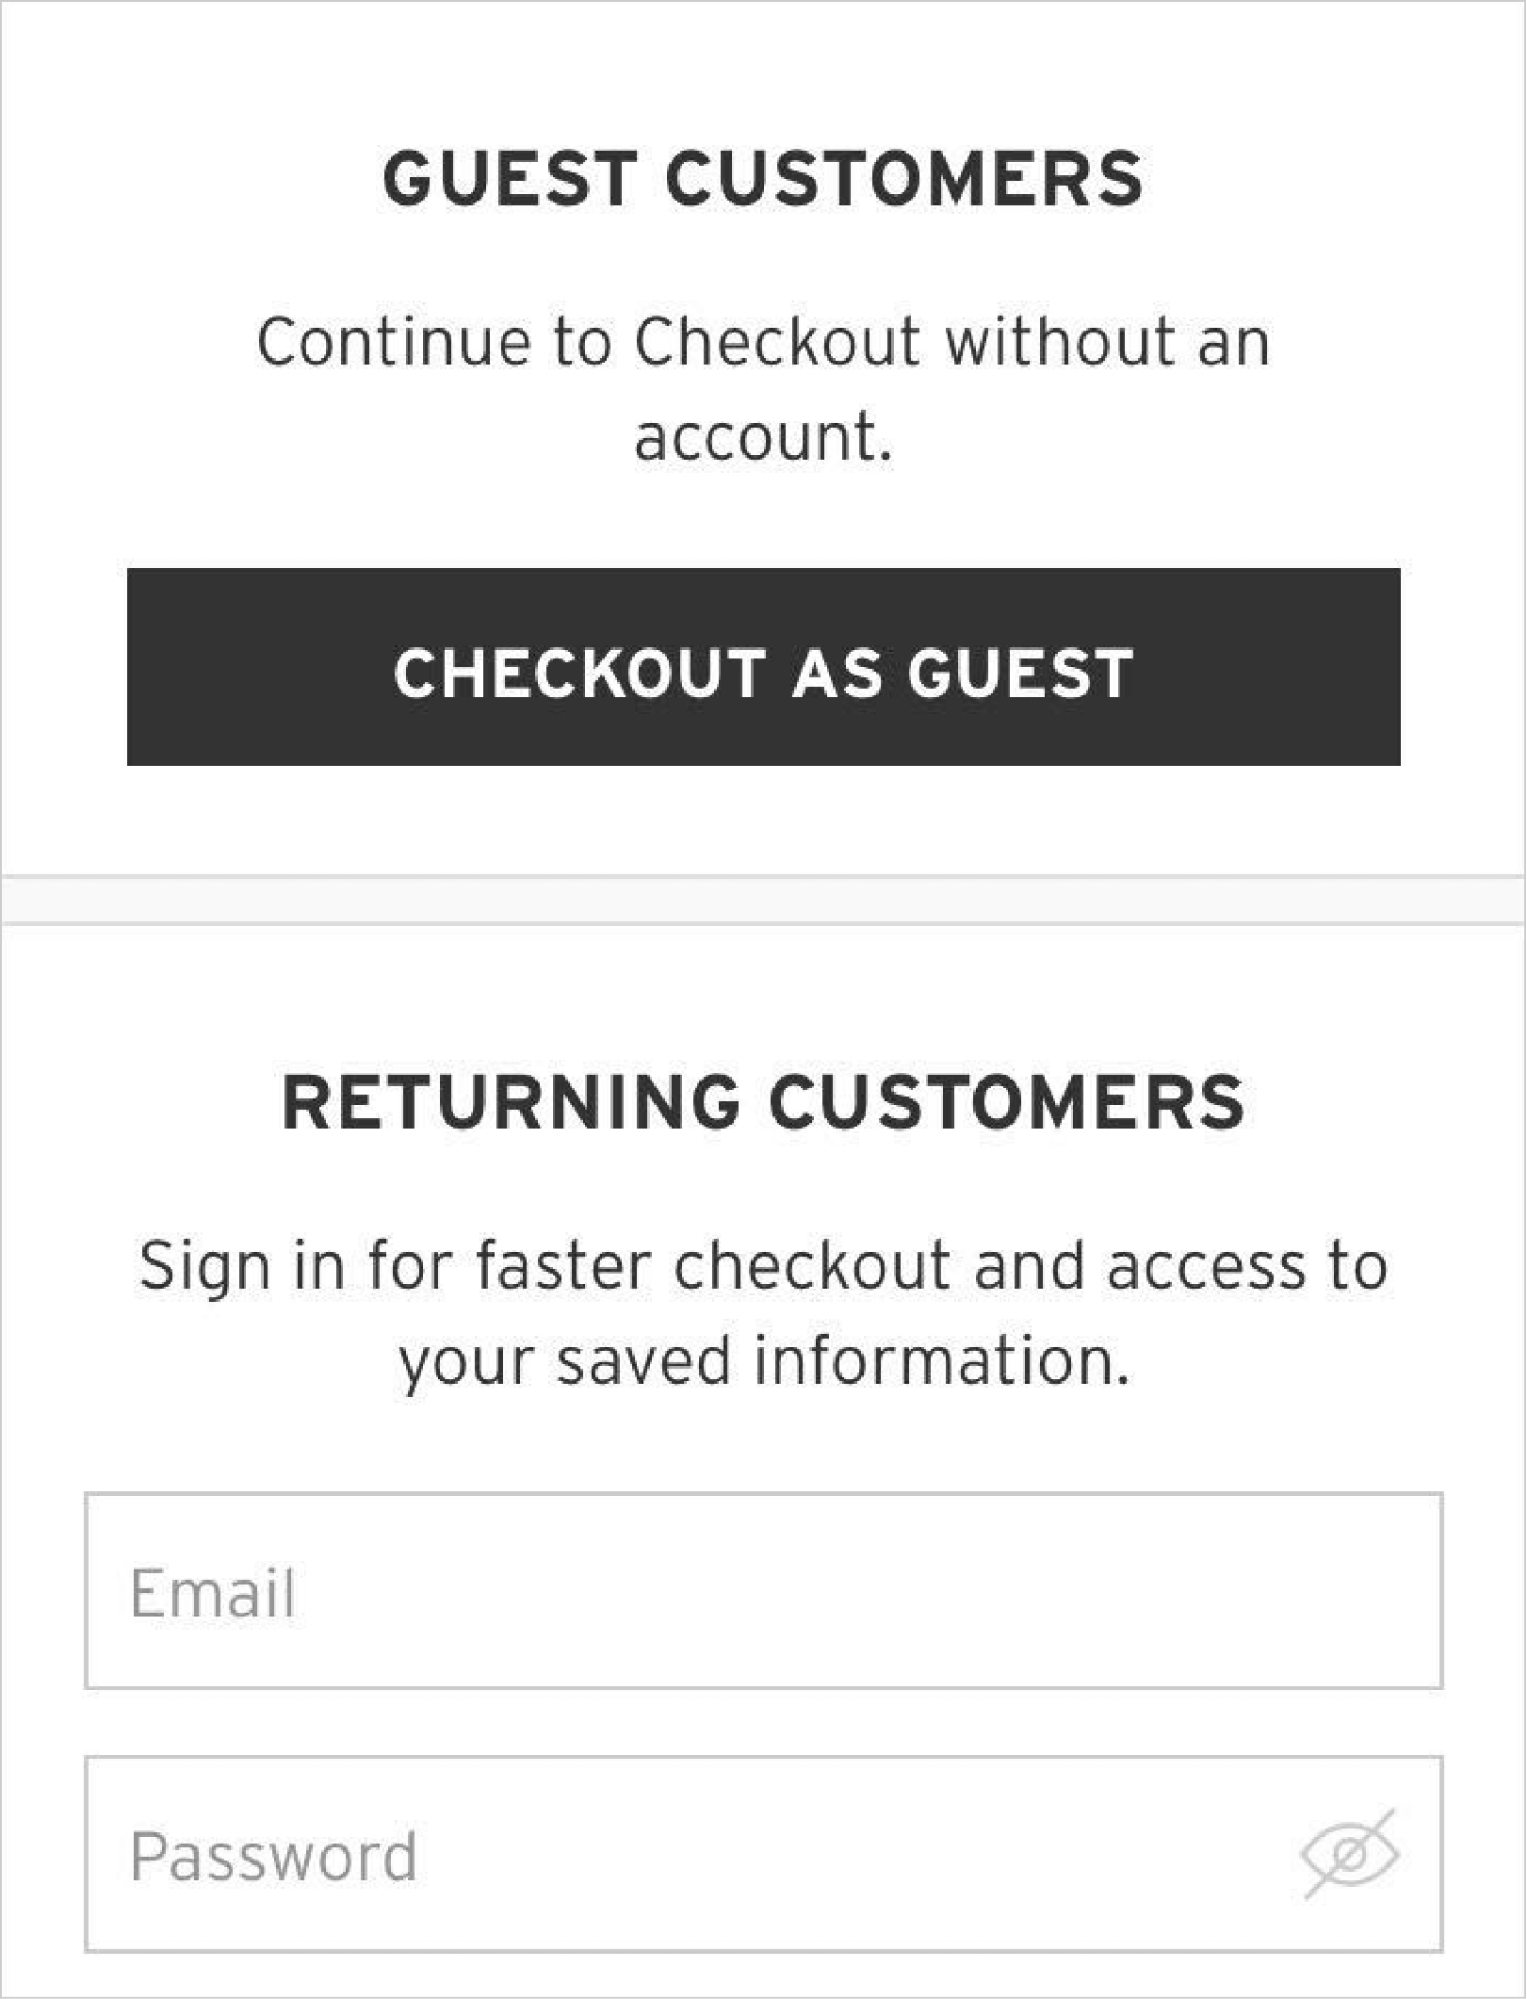 Speed up the Checkout Process by Offering Guest Checkout